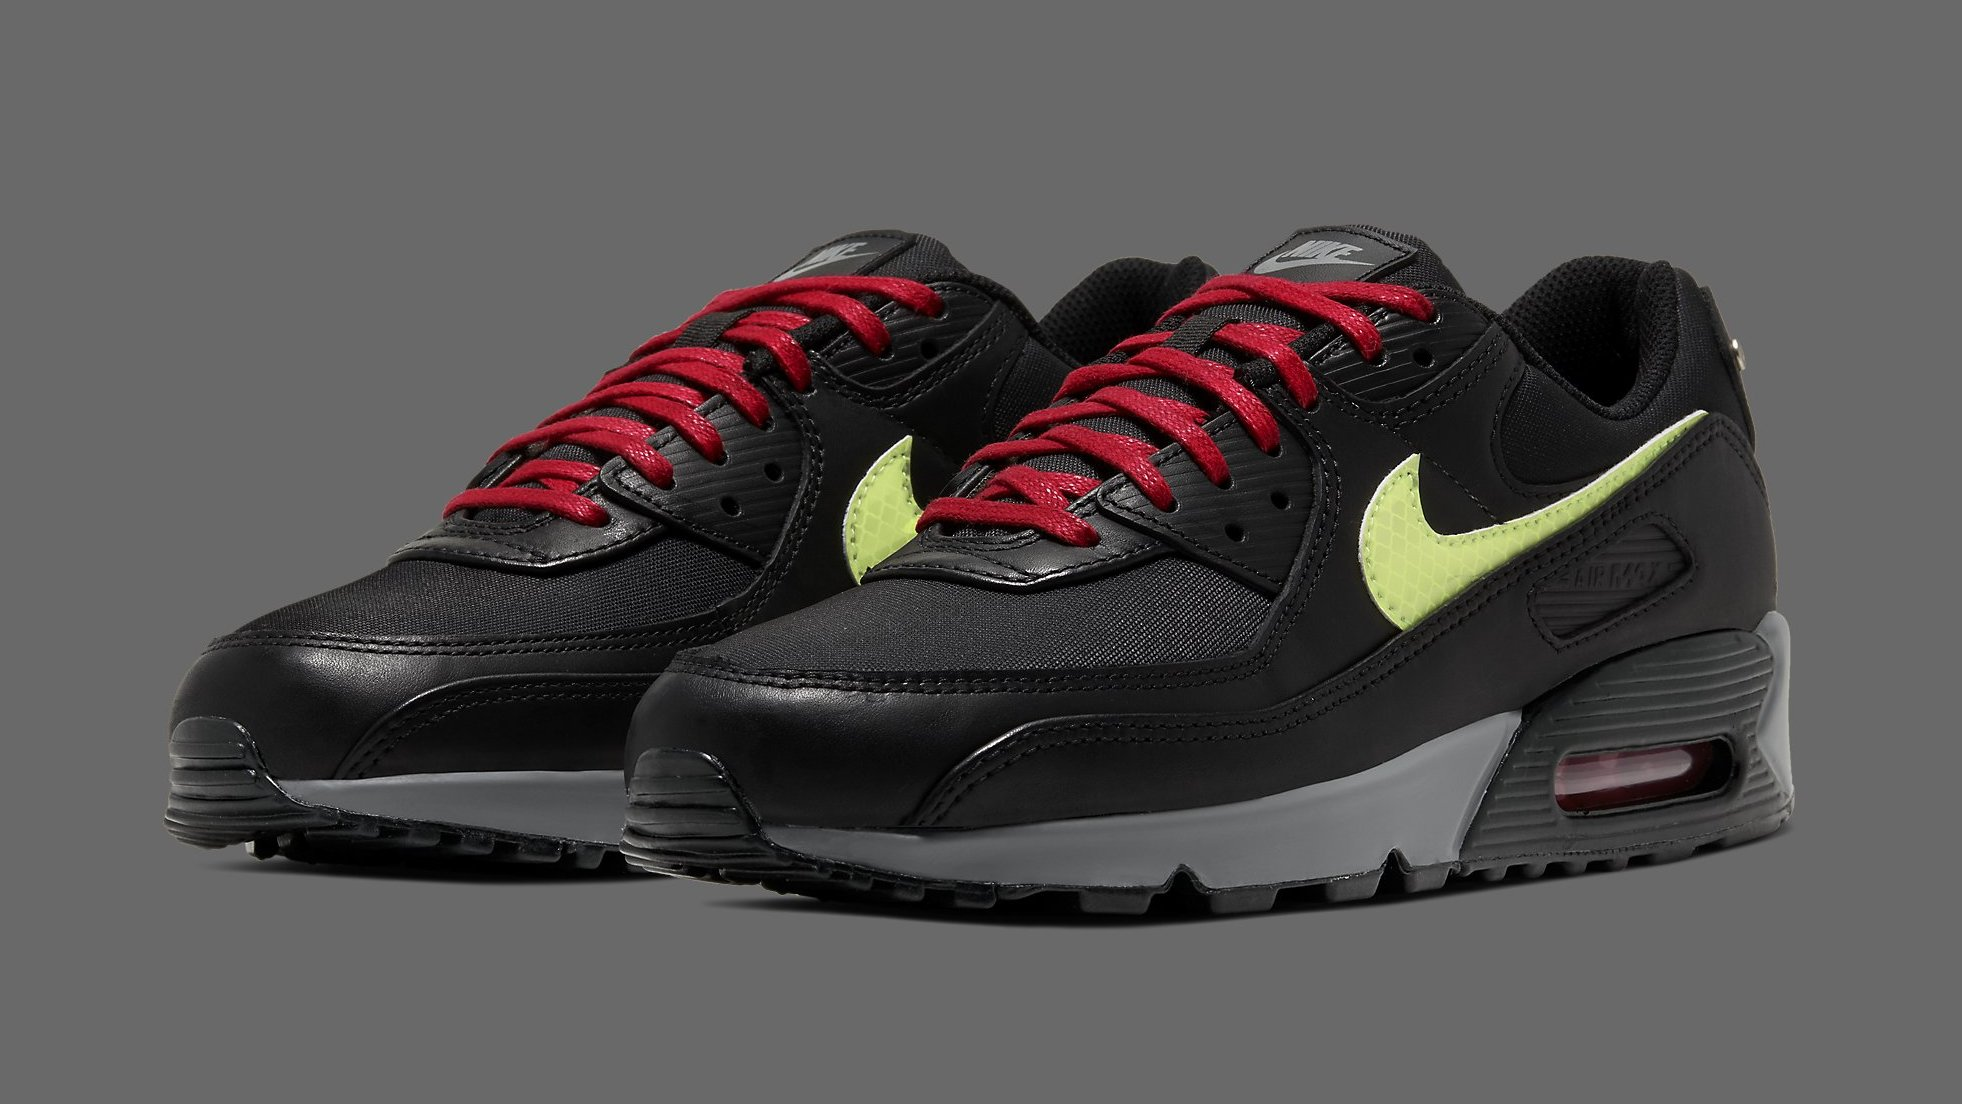 Nike Air Max 90 'City Pack' Release Date | Sole Collector